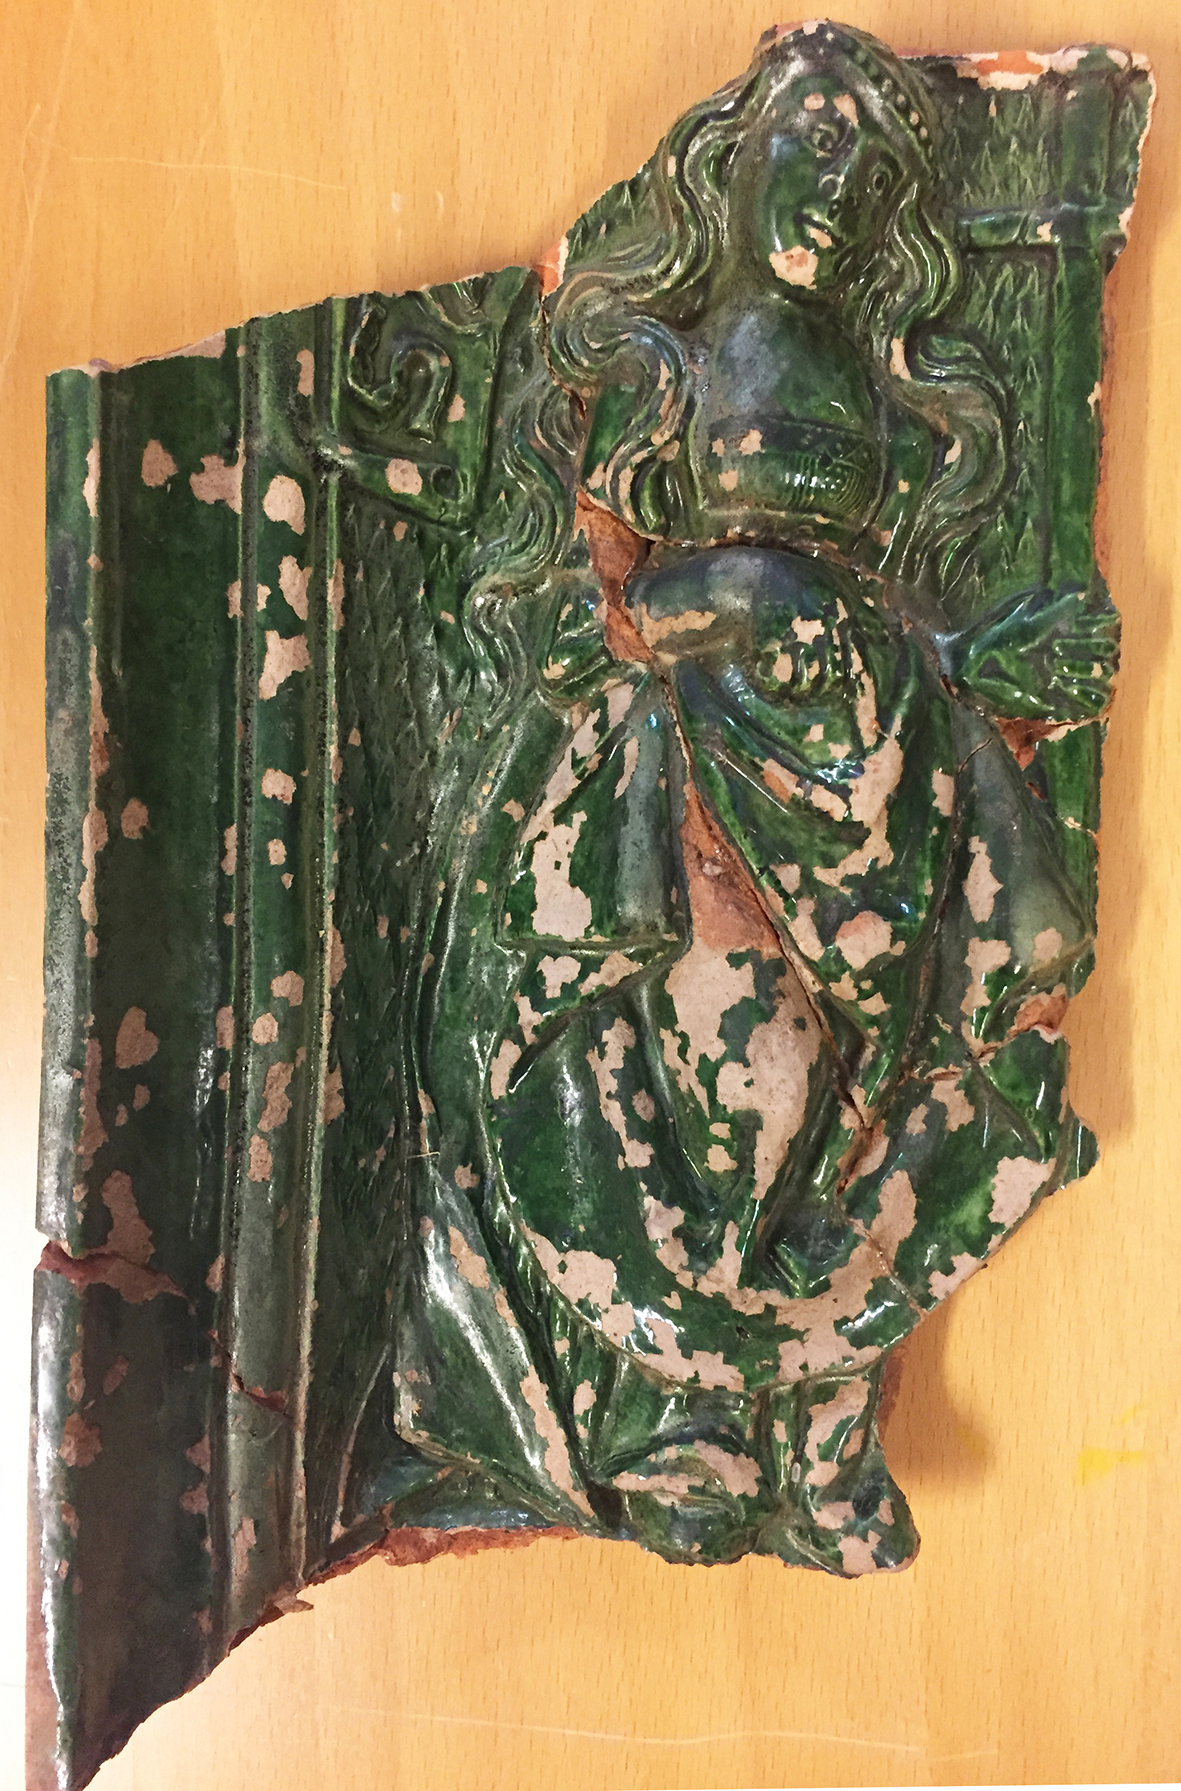 Stove Tile Produced In The Area Between Lbeck And Bremen With Relief Of Probably A Female Saint Photograph By Natascha Mehler